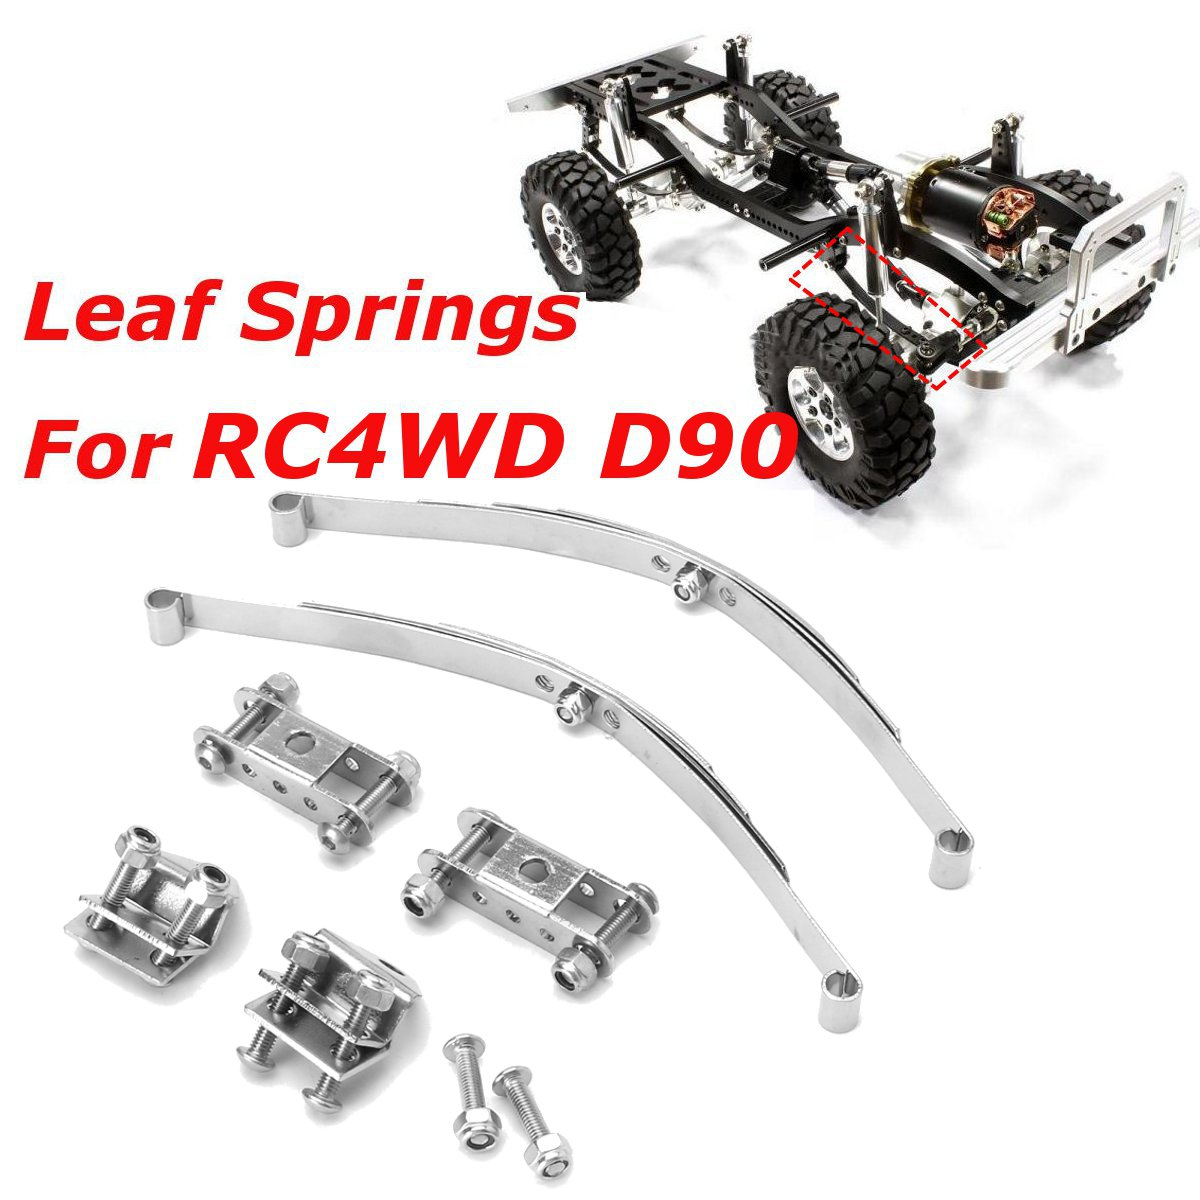 1/10 Leaf Springs Set HighLift Chassis For D90 RC Crawler Car Parts ...